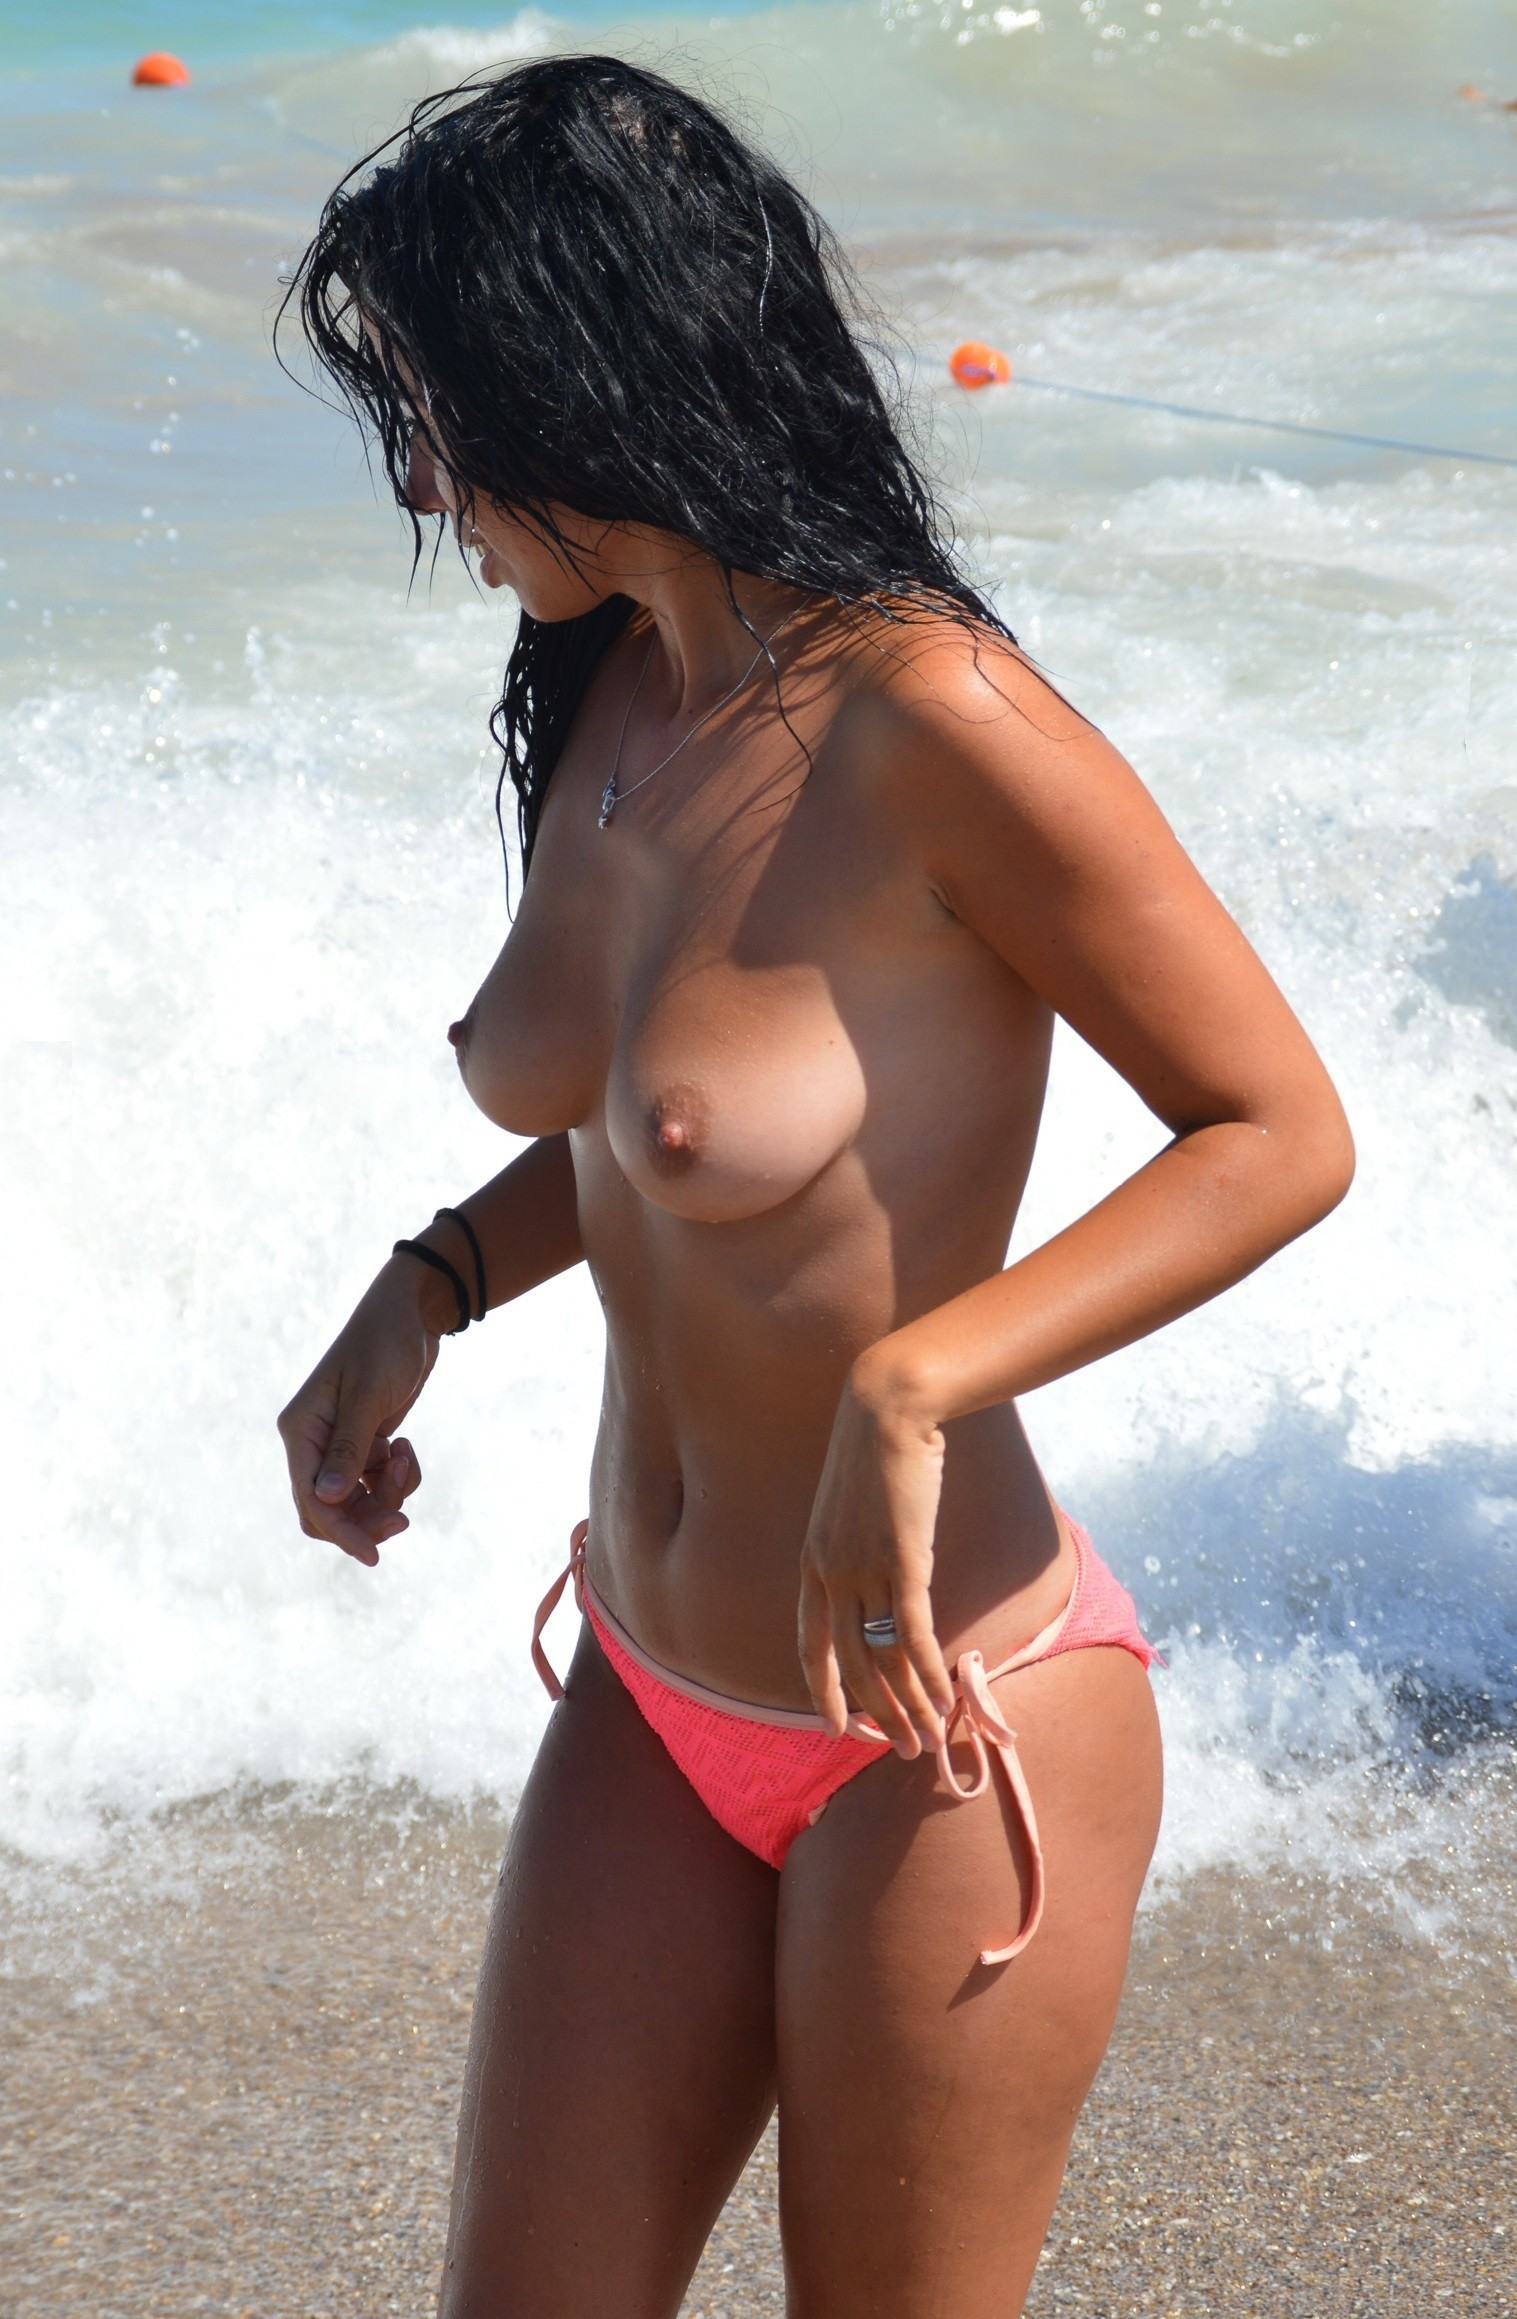 nudists-girls-boobs-beach-topless-mix-vol7-83